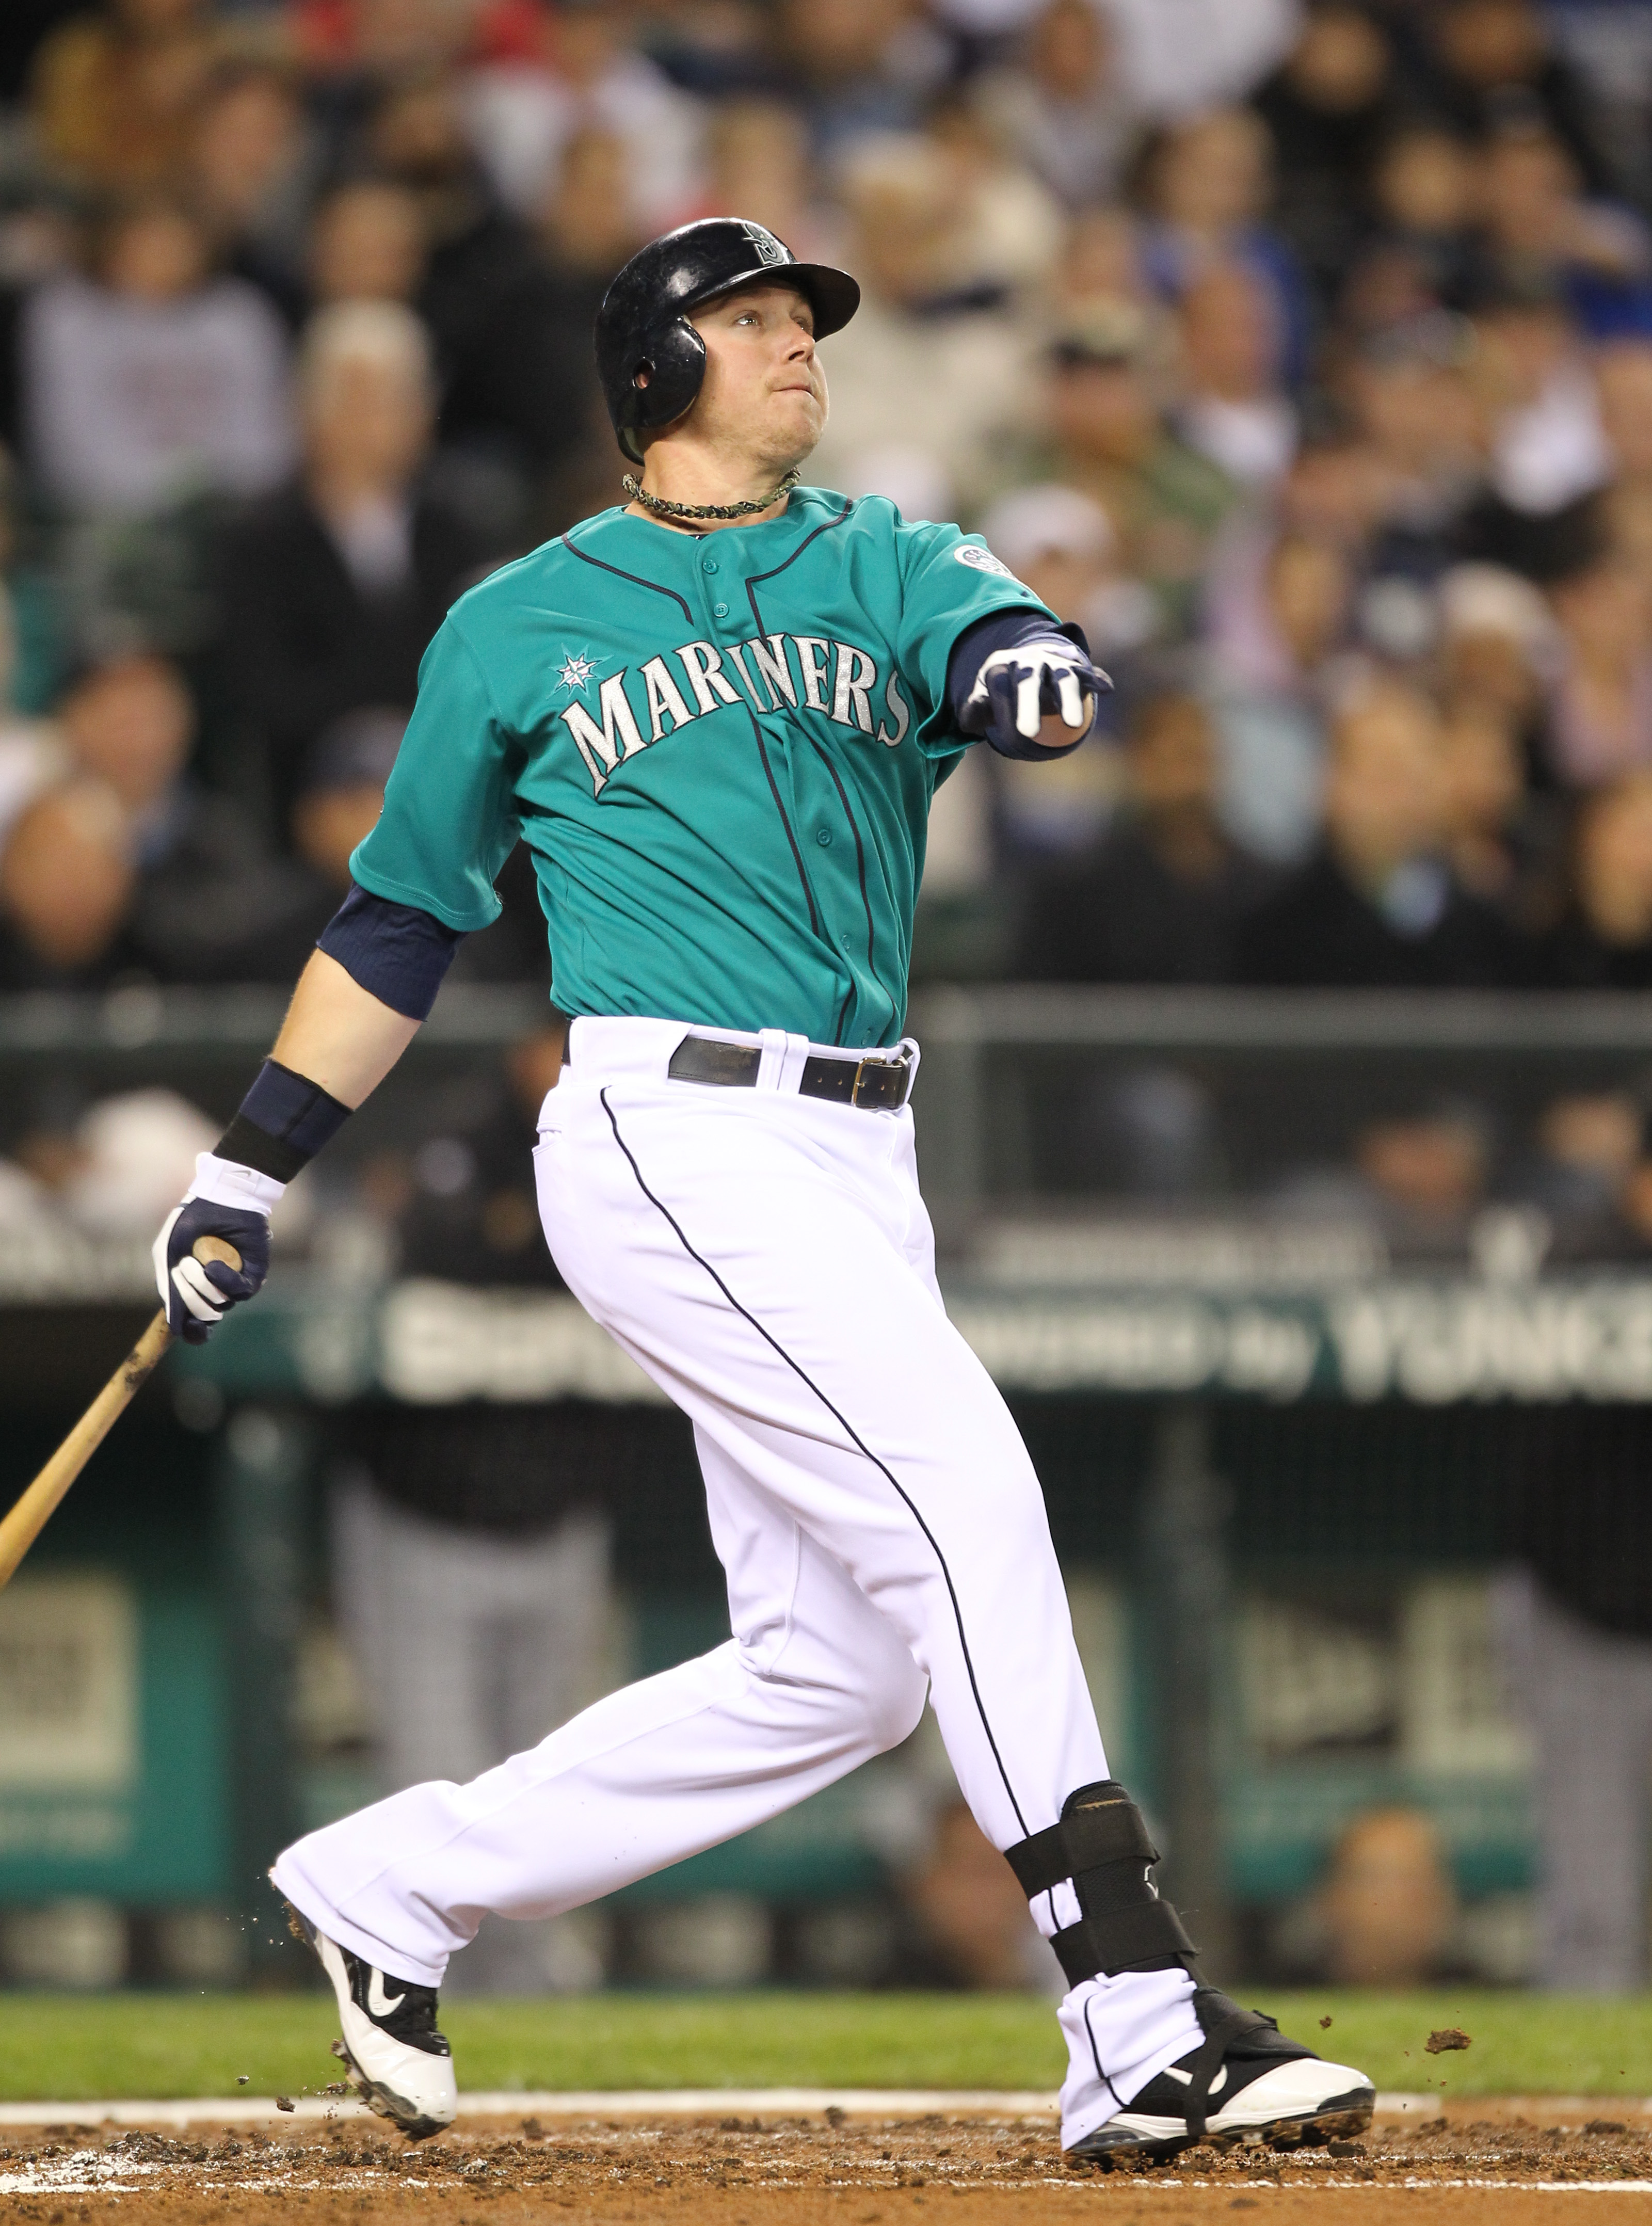 SEATTLE - MAY 06:  Justin Smoak #17 of the Seattle Mariners bats against the Chicago White Sox at Safeco Field on May 6, 2011 in Seattle, Washington. The Mariners won 3-2. (Photo by Otto Greule Jr/Getty Images)